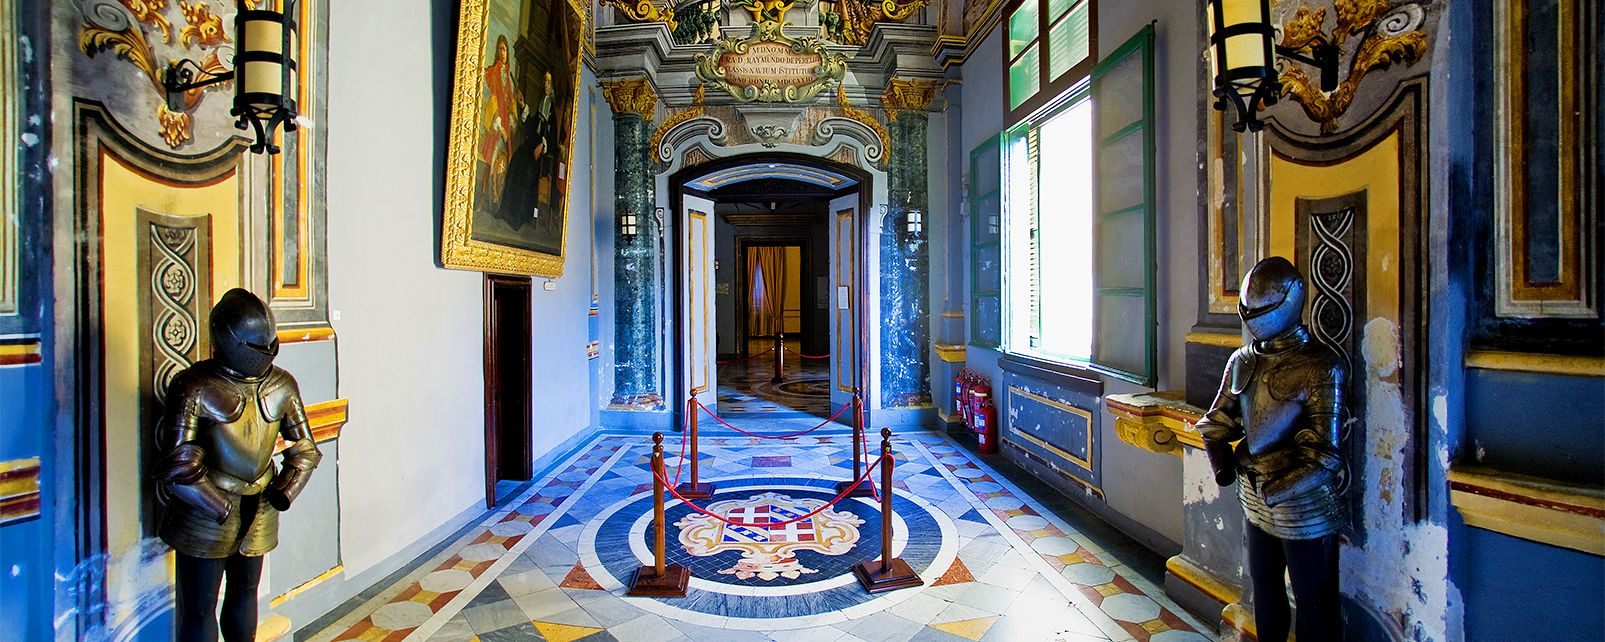 Palace of the President of the Republic, The Grand Palace of the President of the Republic of Malta, Monuments, Malta